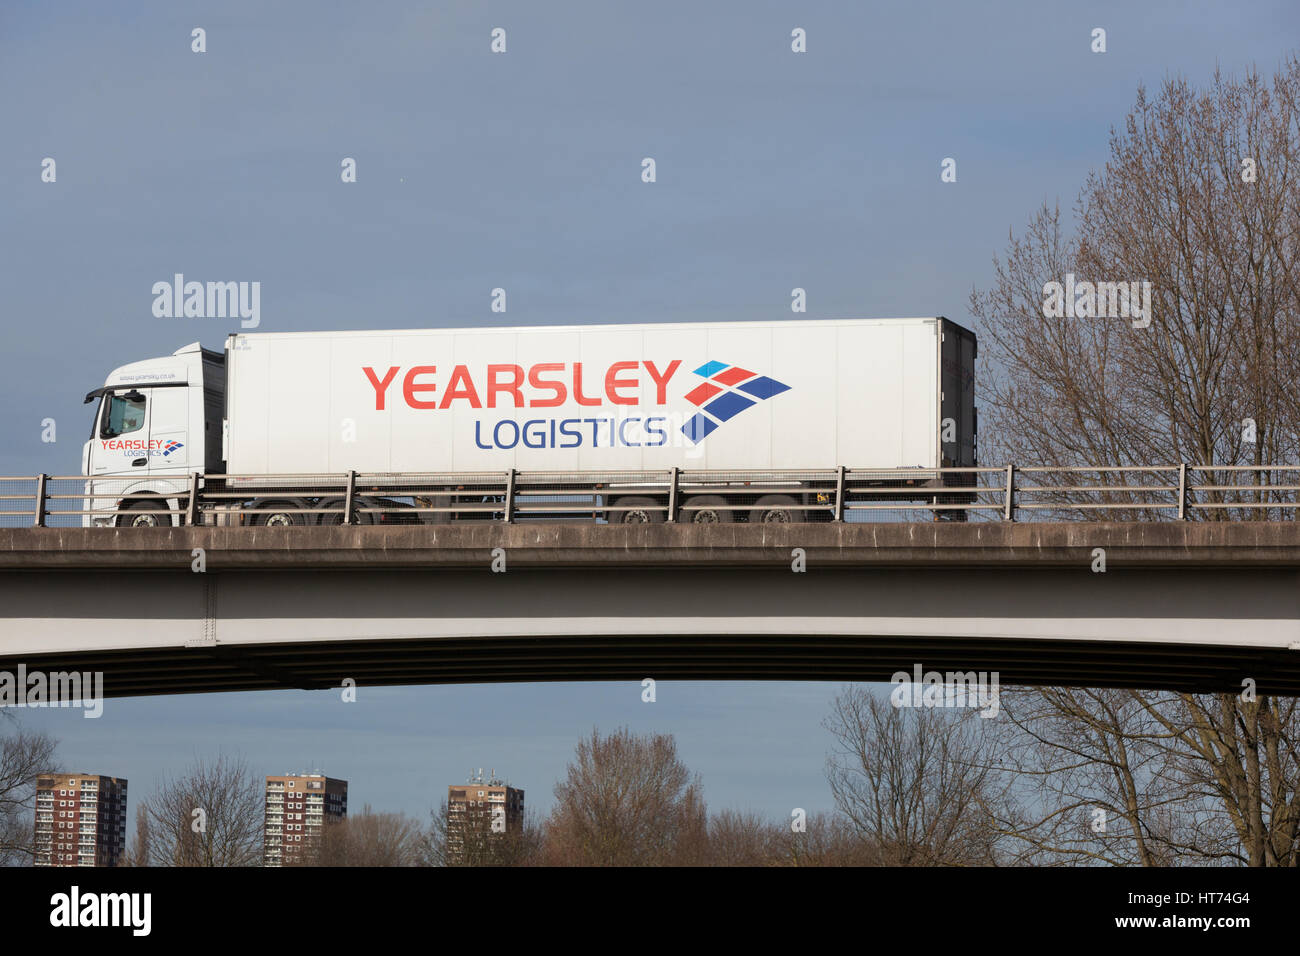 Logistica Yearsley camion su strada nelle Midlands Immagini Stock